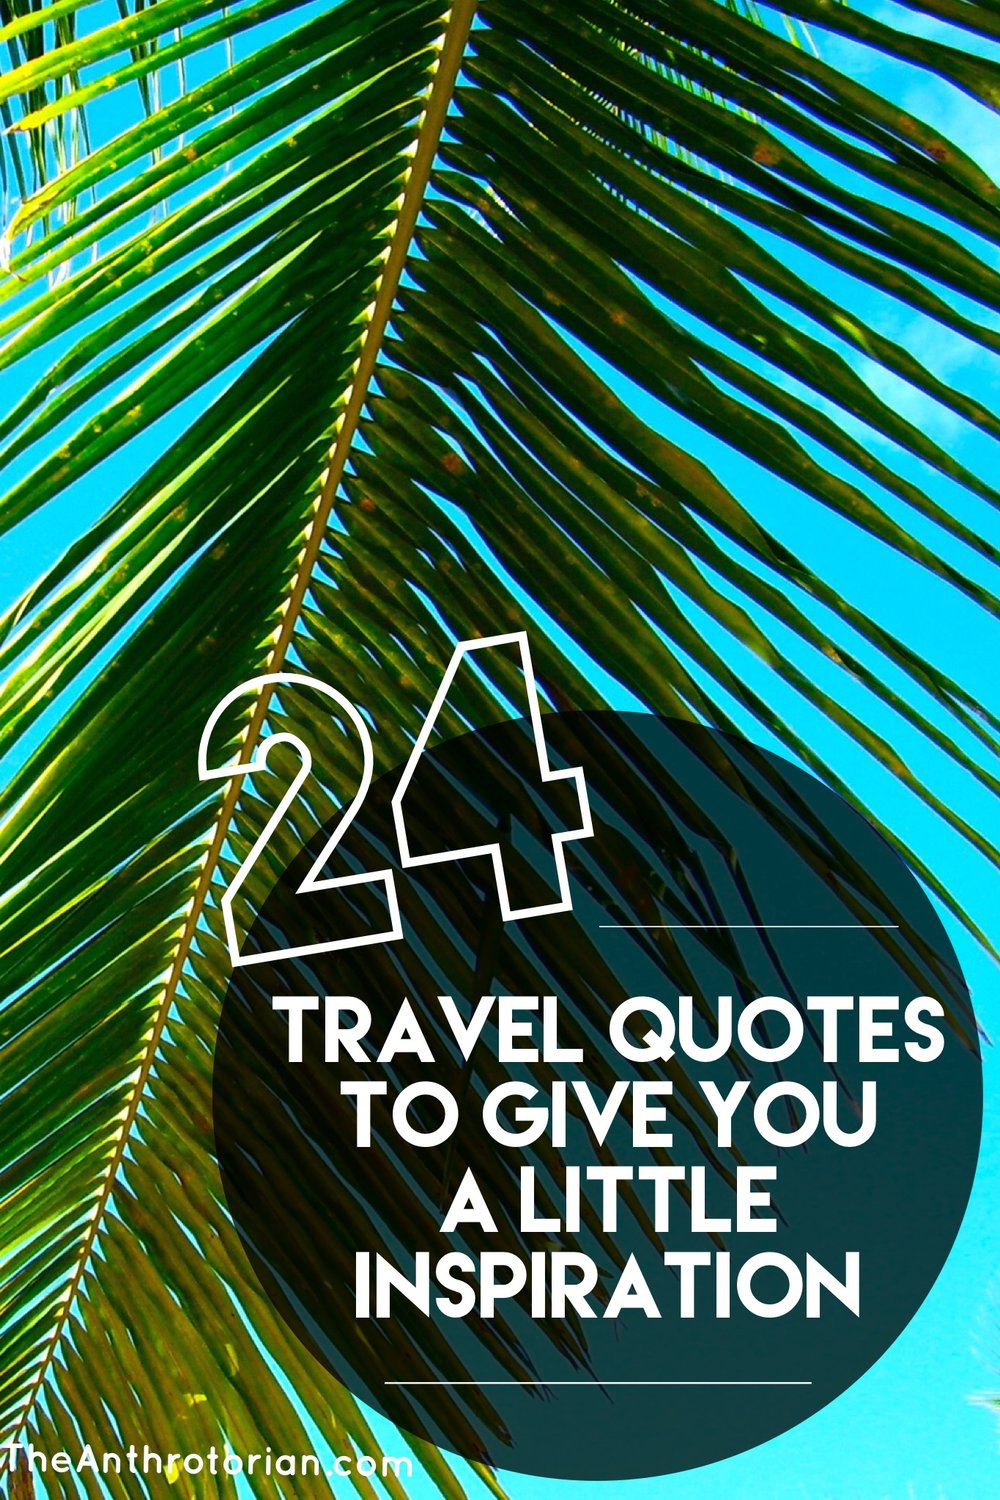 24 Travel Quotes to Give You A Little Inspiration